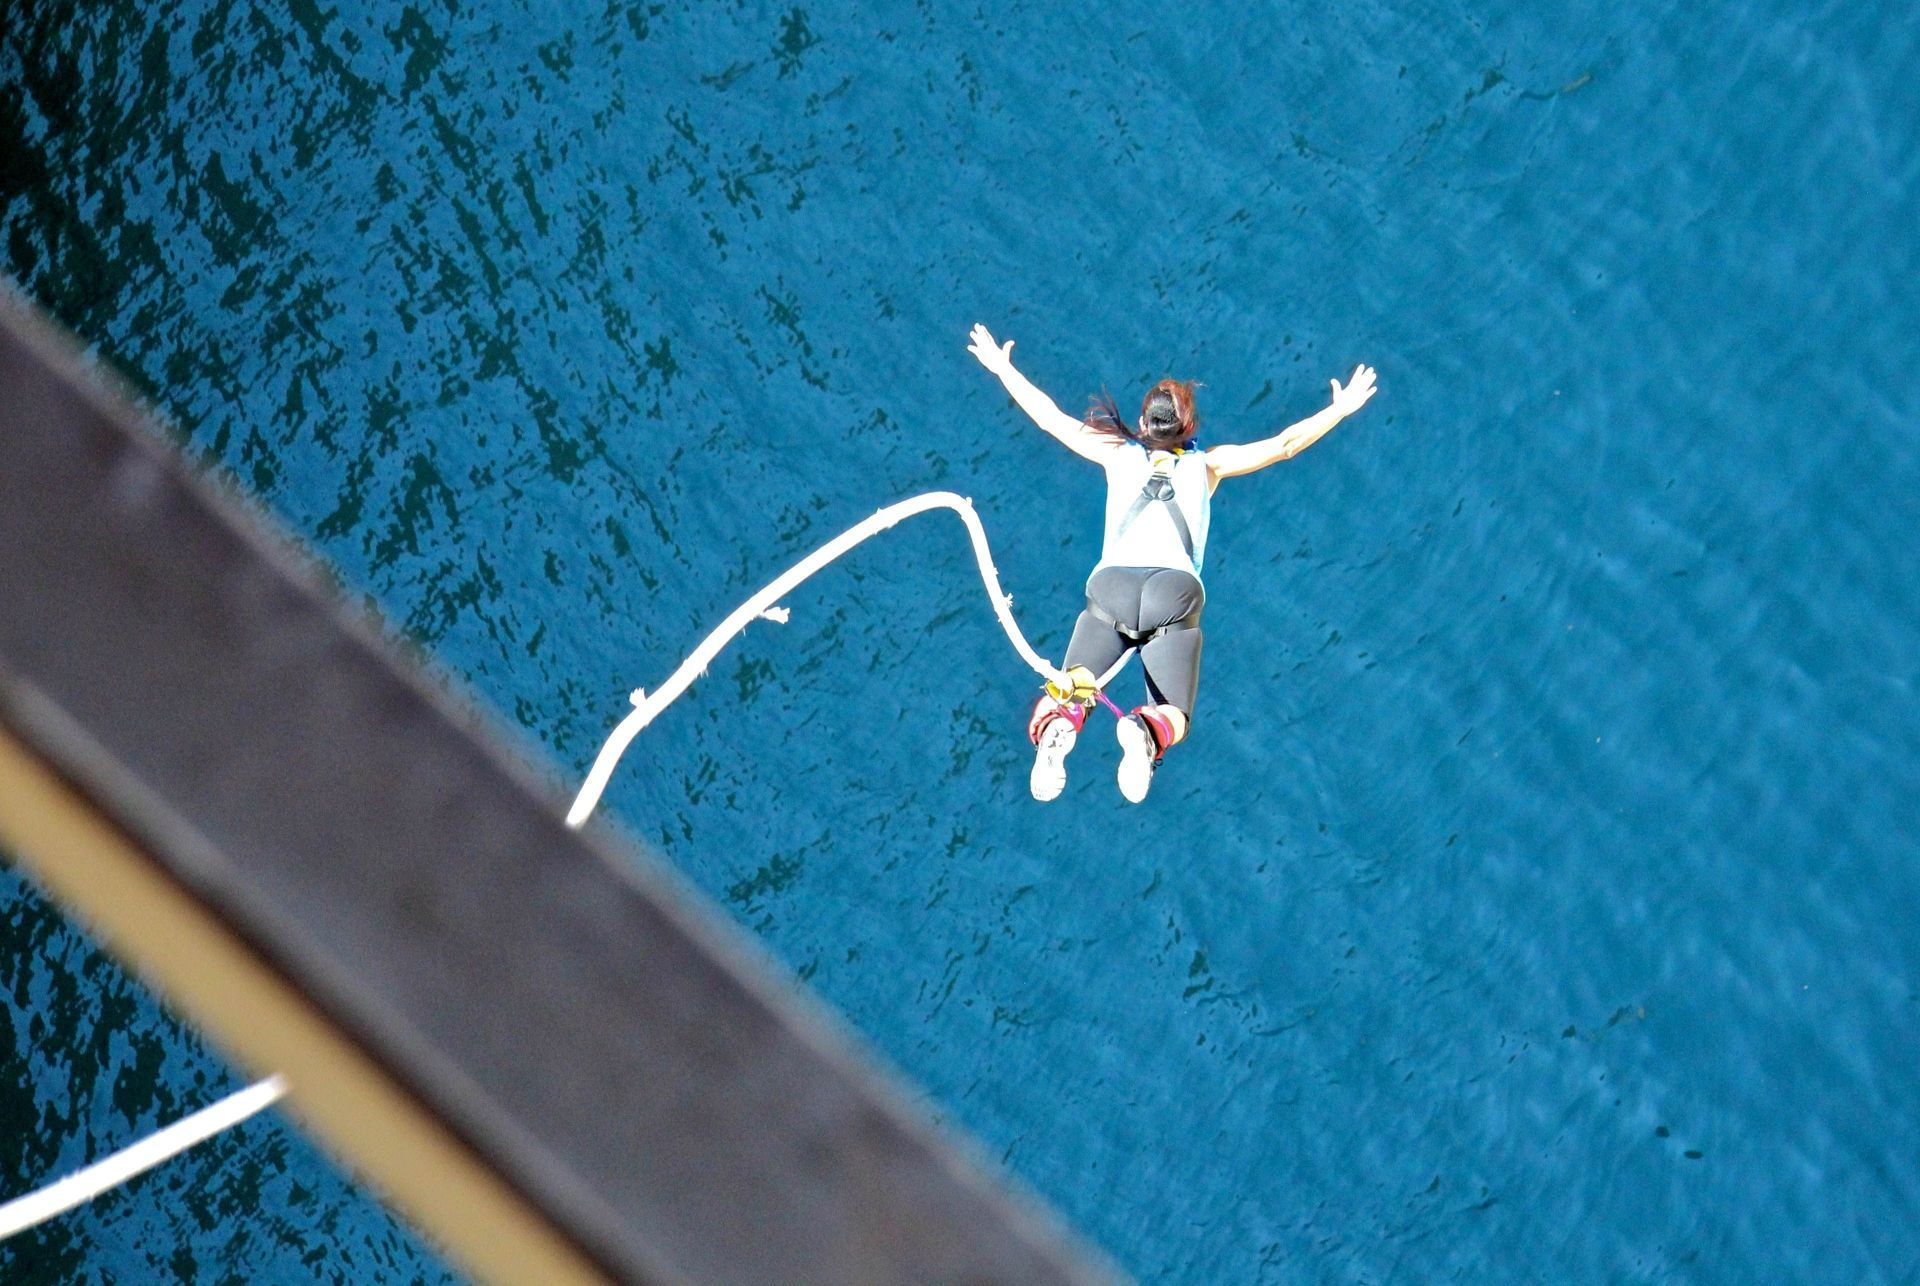 Greece sports: Bungee jumping